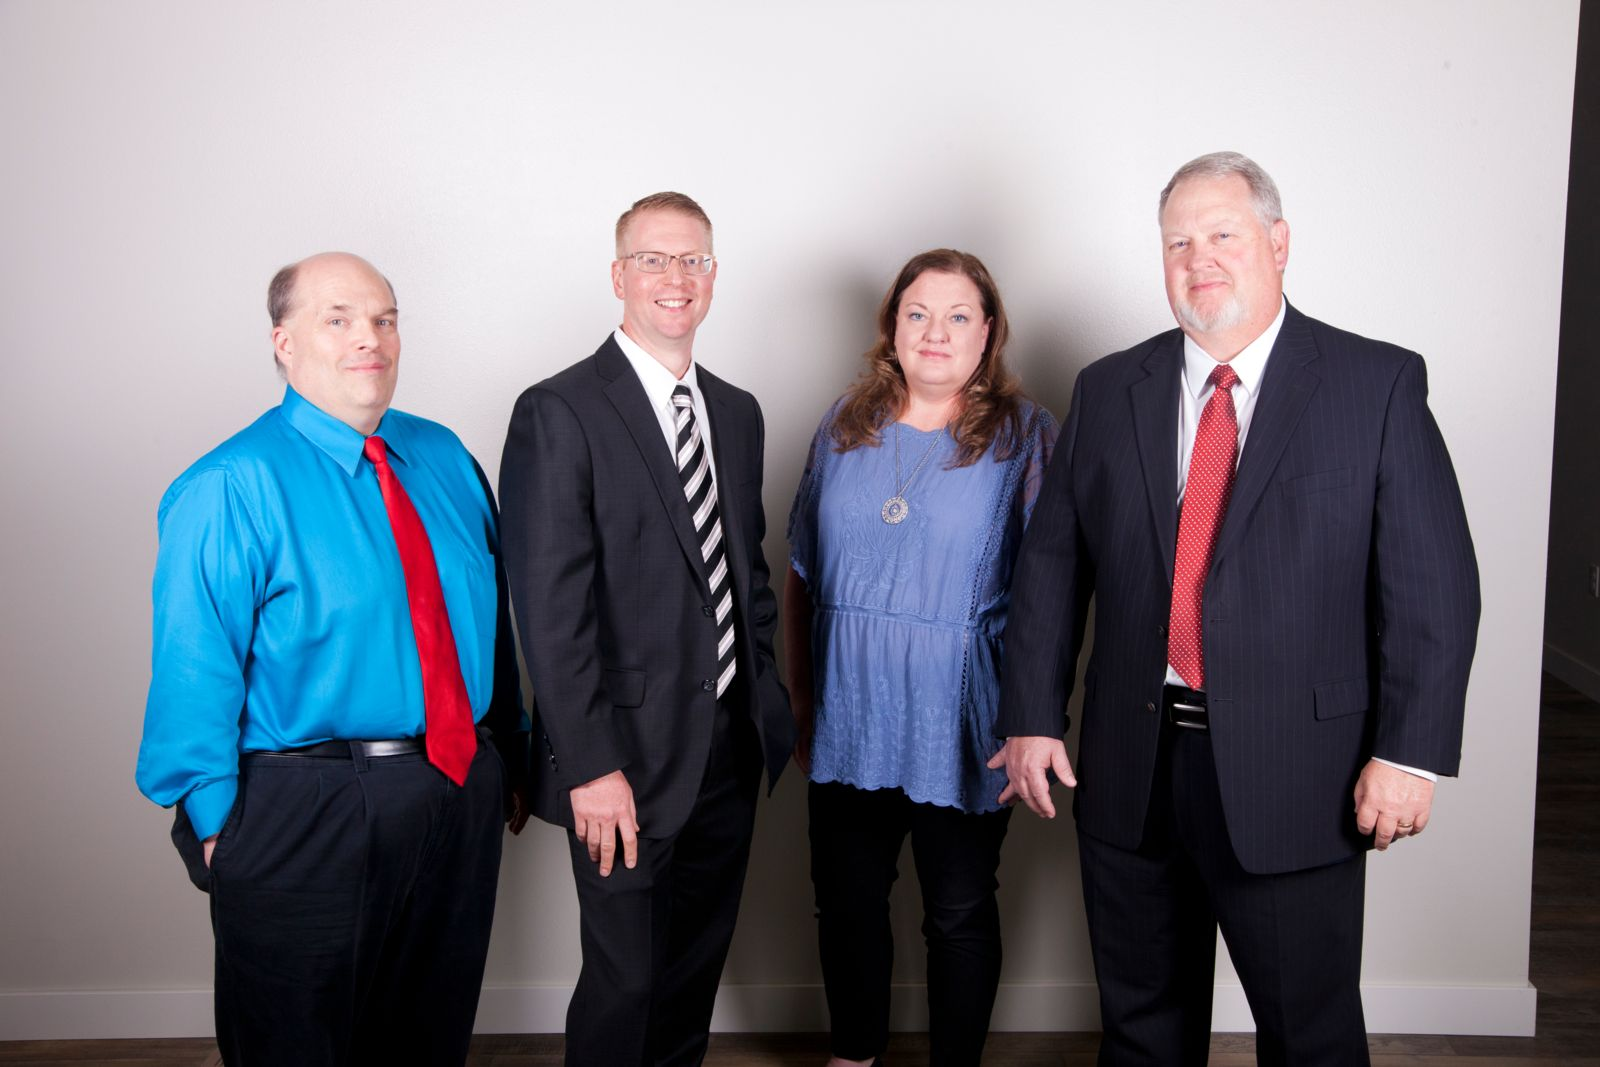 sioux falls sd attorneys